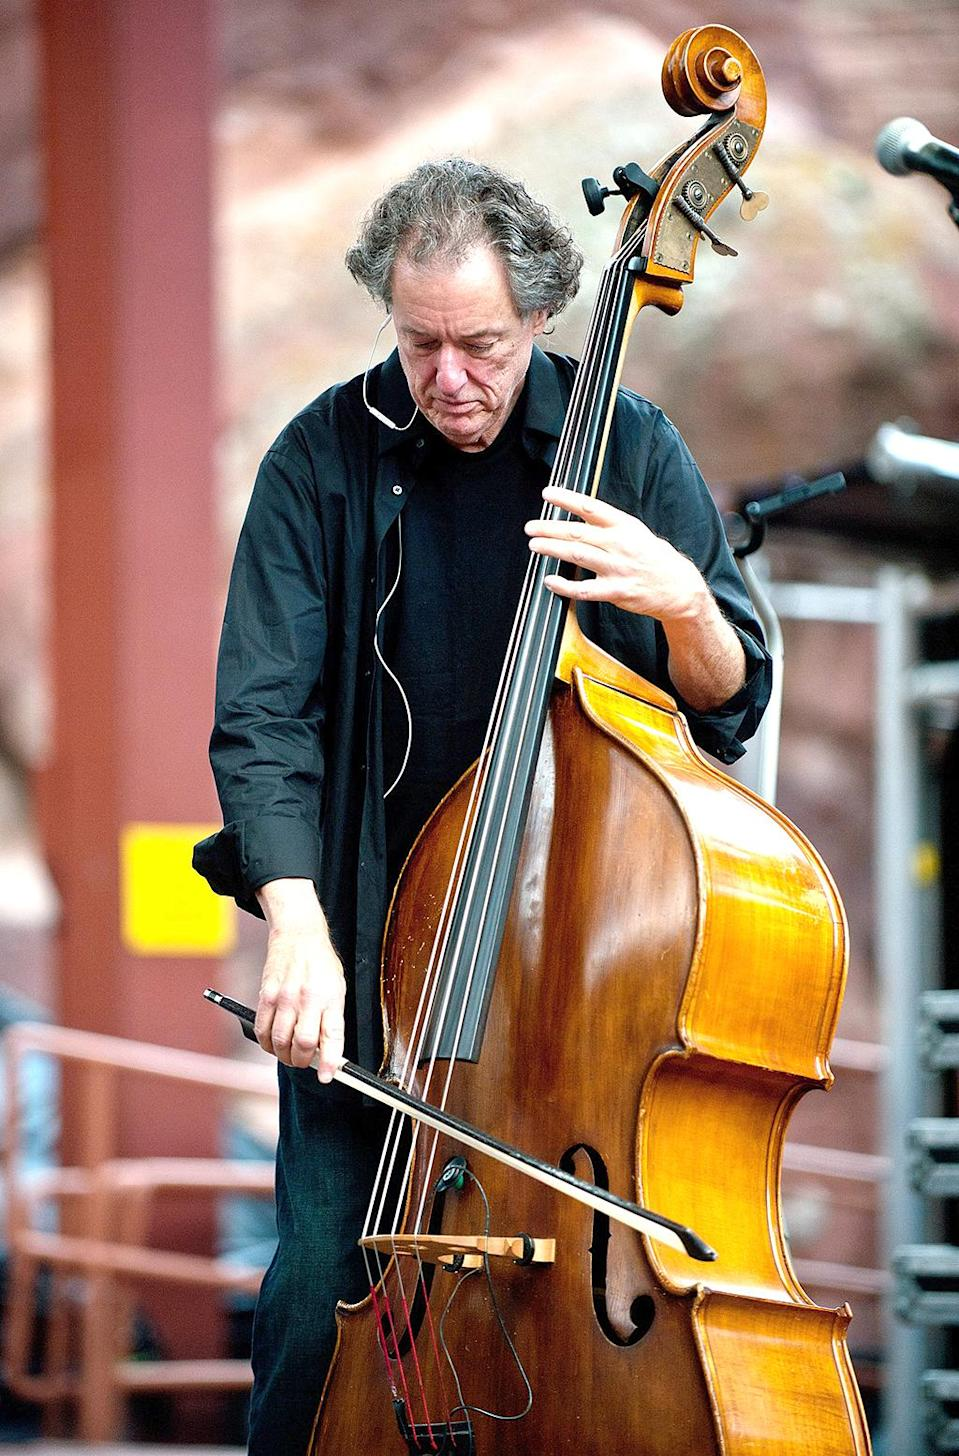 Rob Wasserman was a Grammy-winning composer and bassist who played and recorded with a wide variety of musicians including Bruce Cockburn, Elvis Costello, Ani di Franco, Jerry Garcia, Rickie Lee Jones, Van Morrison, Aaron Neville, Lou Reed, Pete Seeger, Bob Weir, Brian Wilson, Neil Young, and many others. He died June 29 after a battle with cancer. He was 64. (Photo: Getty)